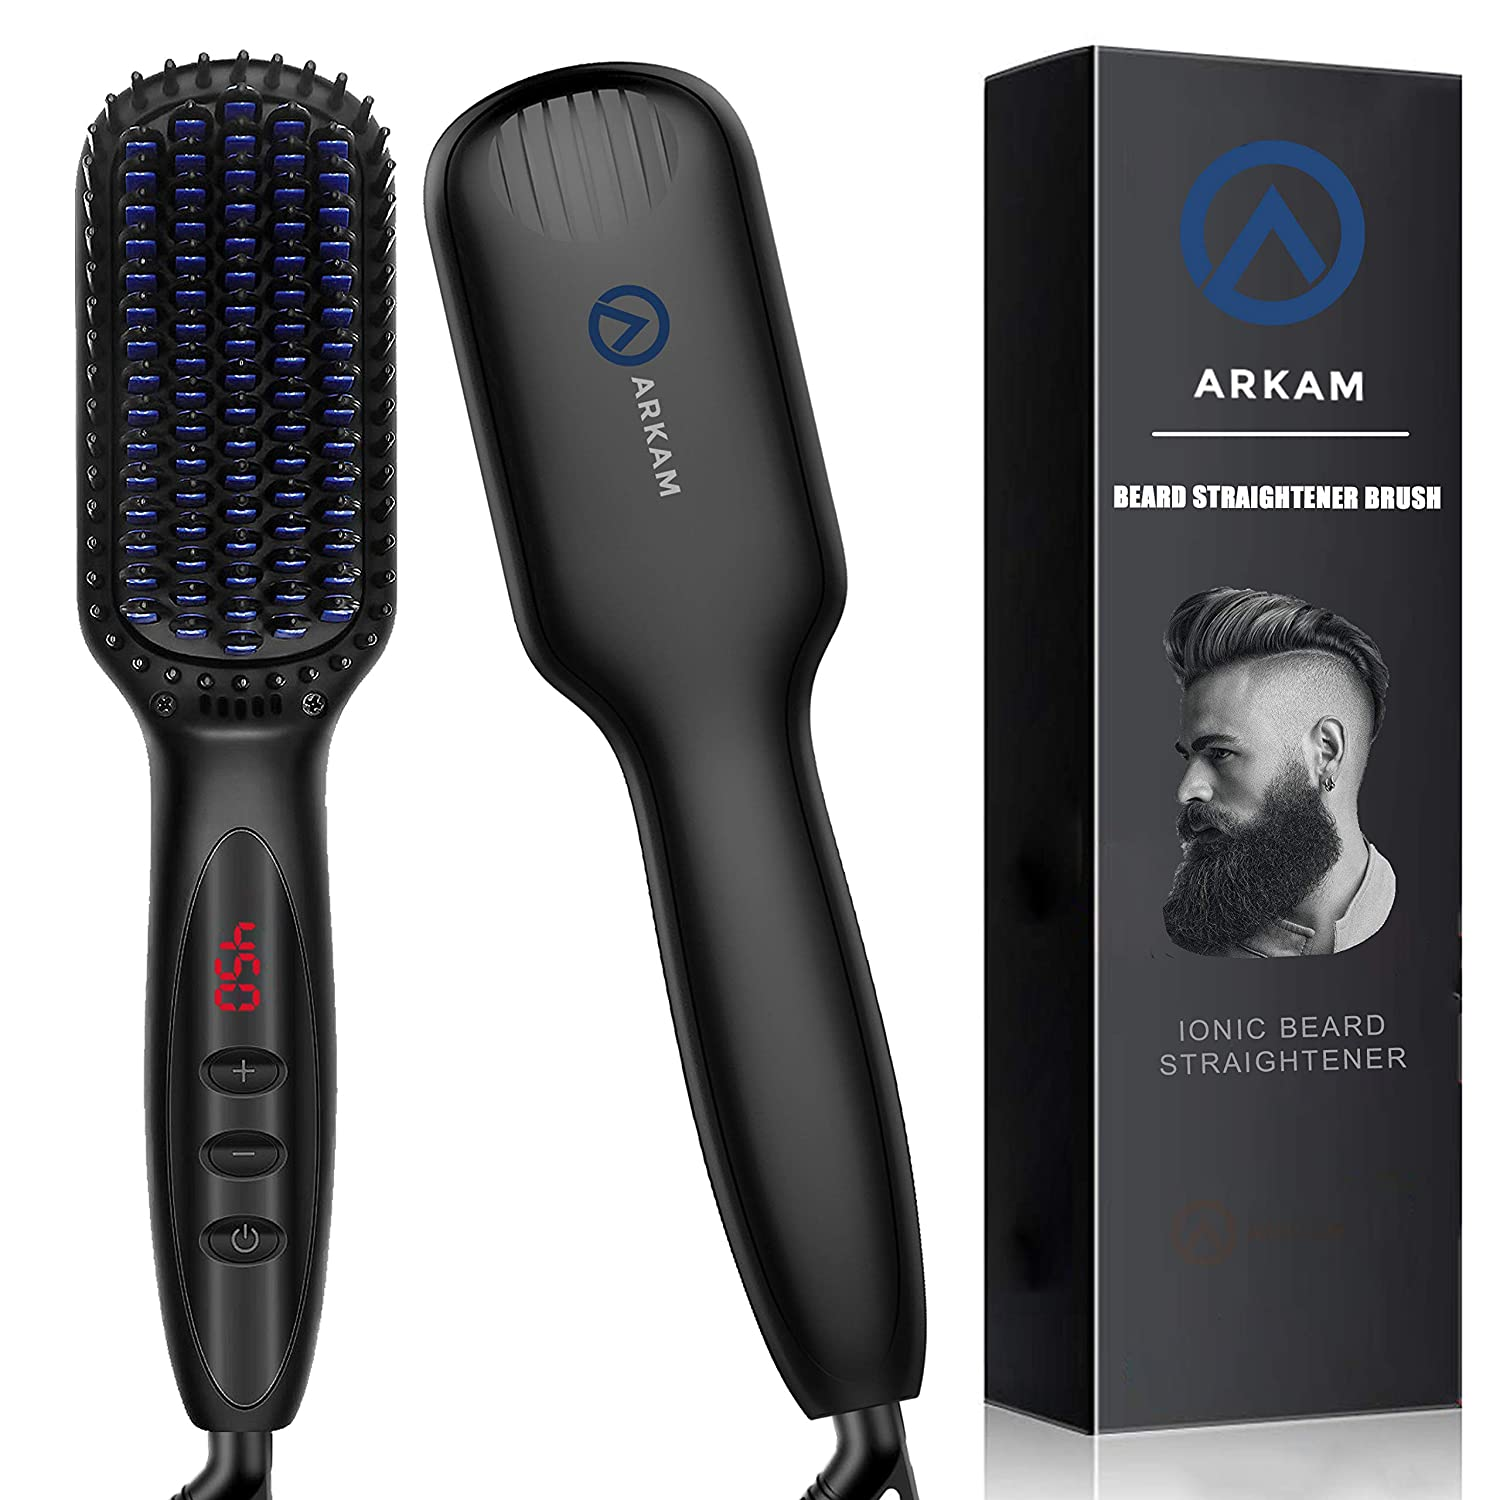 Arkam Beard Straightener for Men, Ionic Beard Straightening Comb with Anti-Scald Feature, Heated Hair Straightener for Men & Women, Portable Beard Brush Straightener Digital Display for Home & Travel